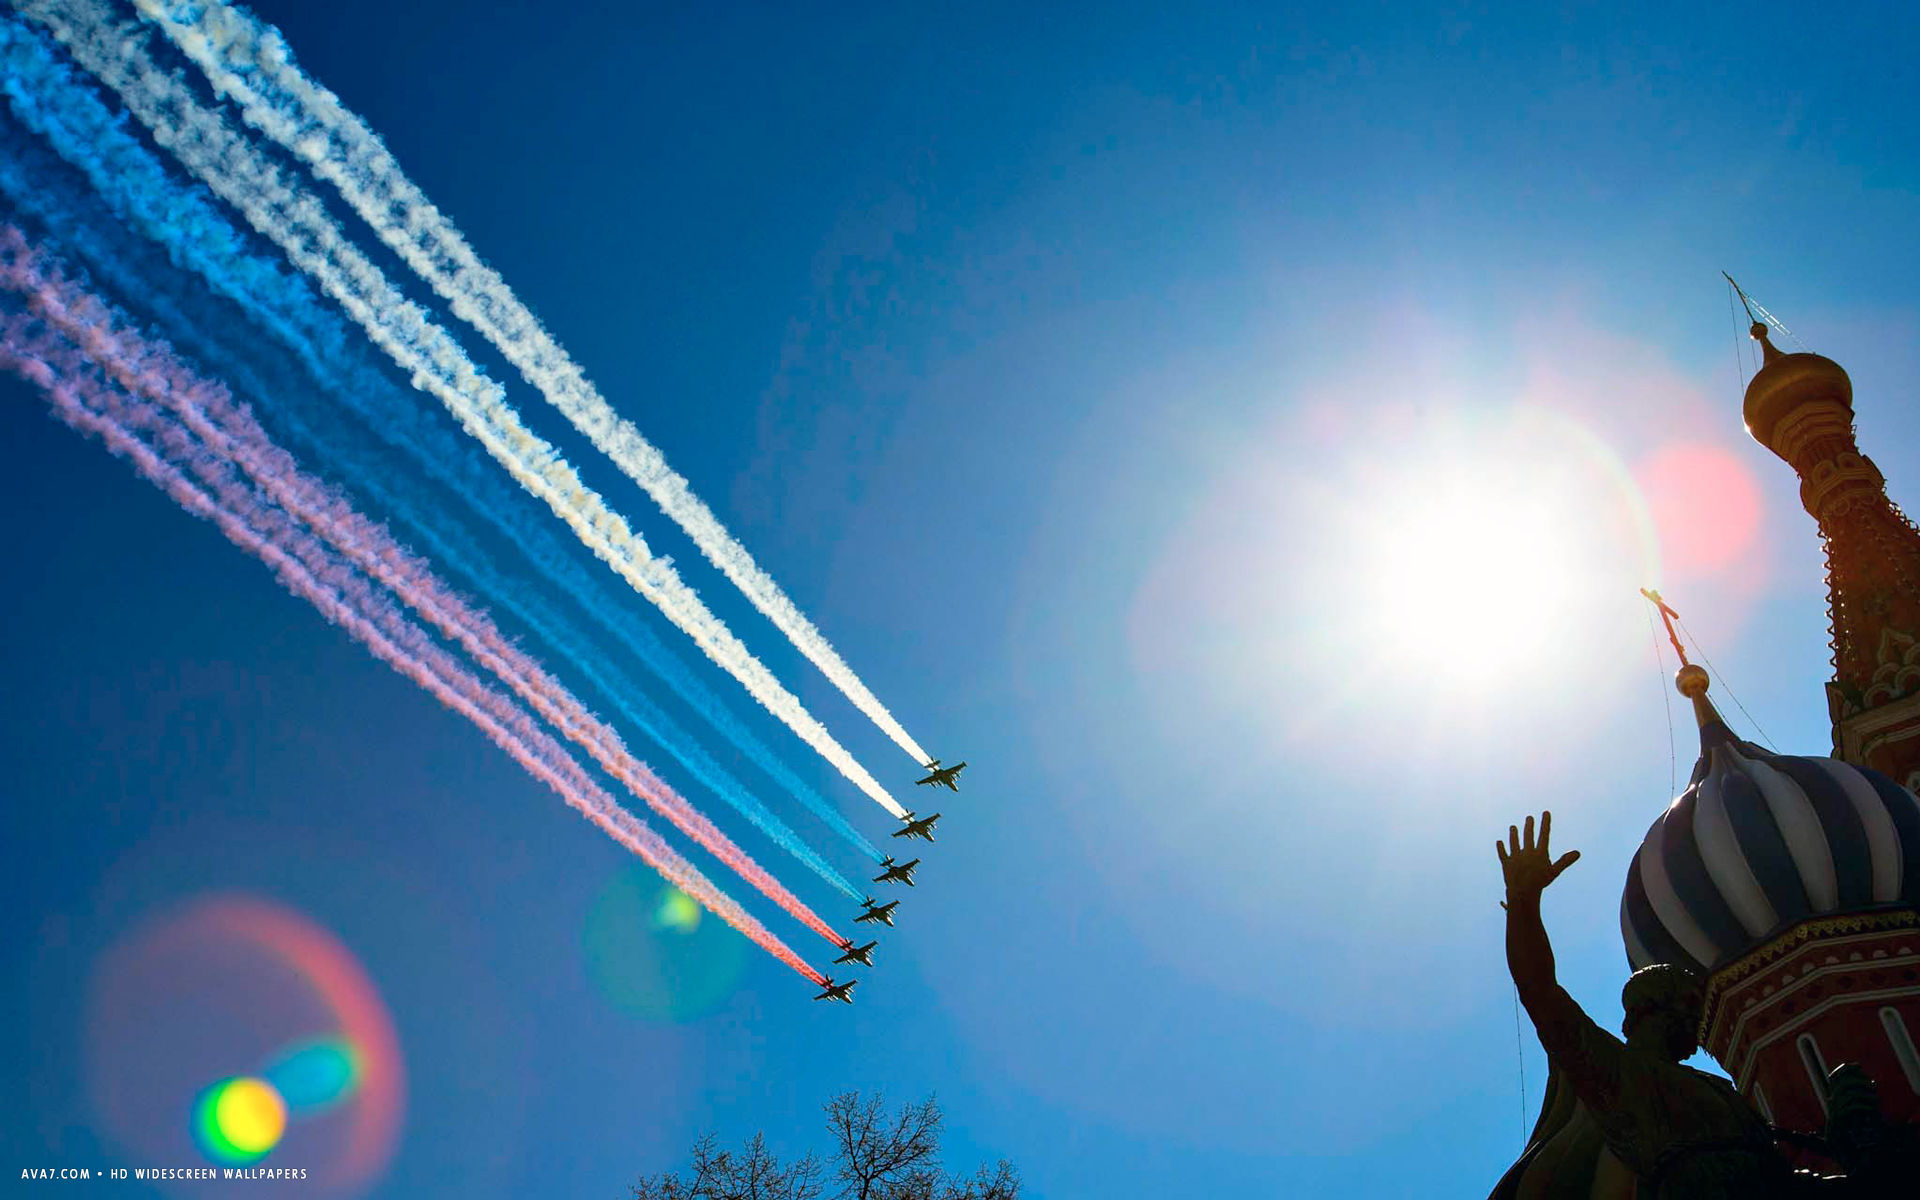 Wallpaper Victory Day Russia Holidays Hd Celebrations: Victory Day Parade Red Square Russia Church Planes Flag